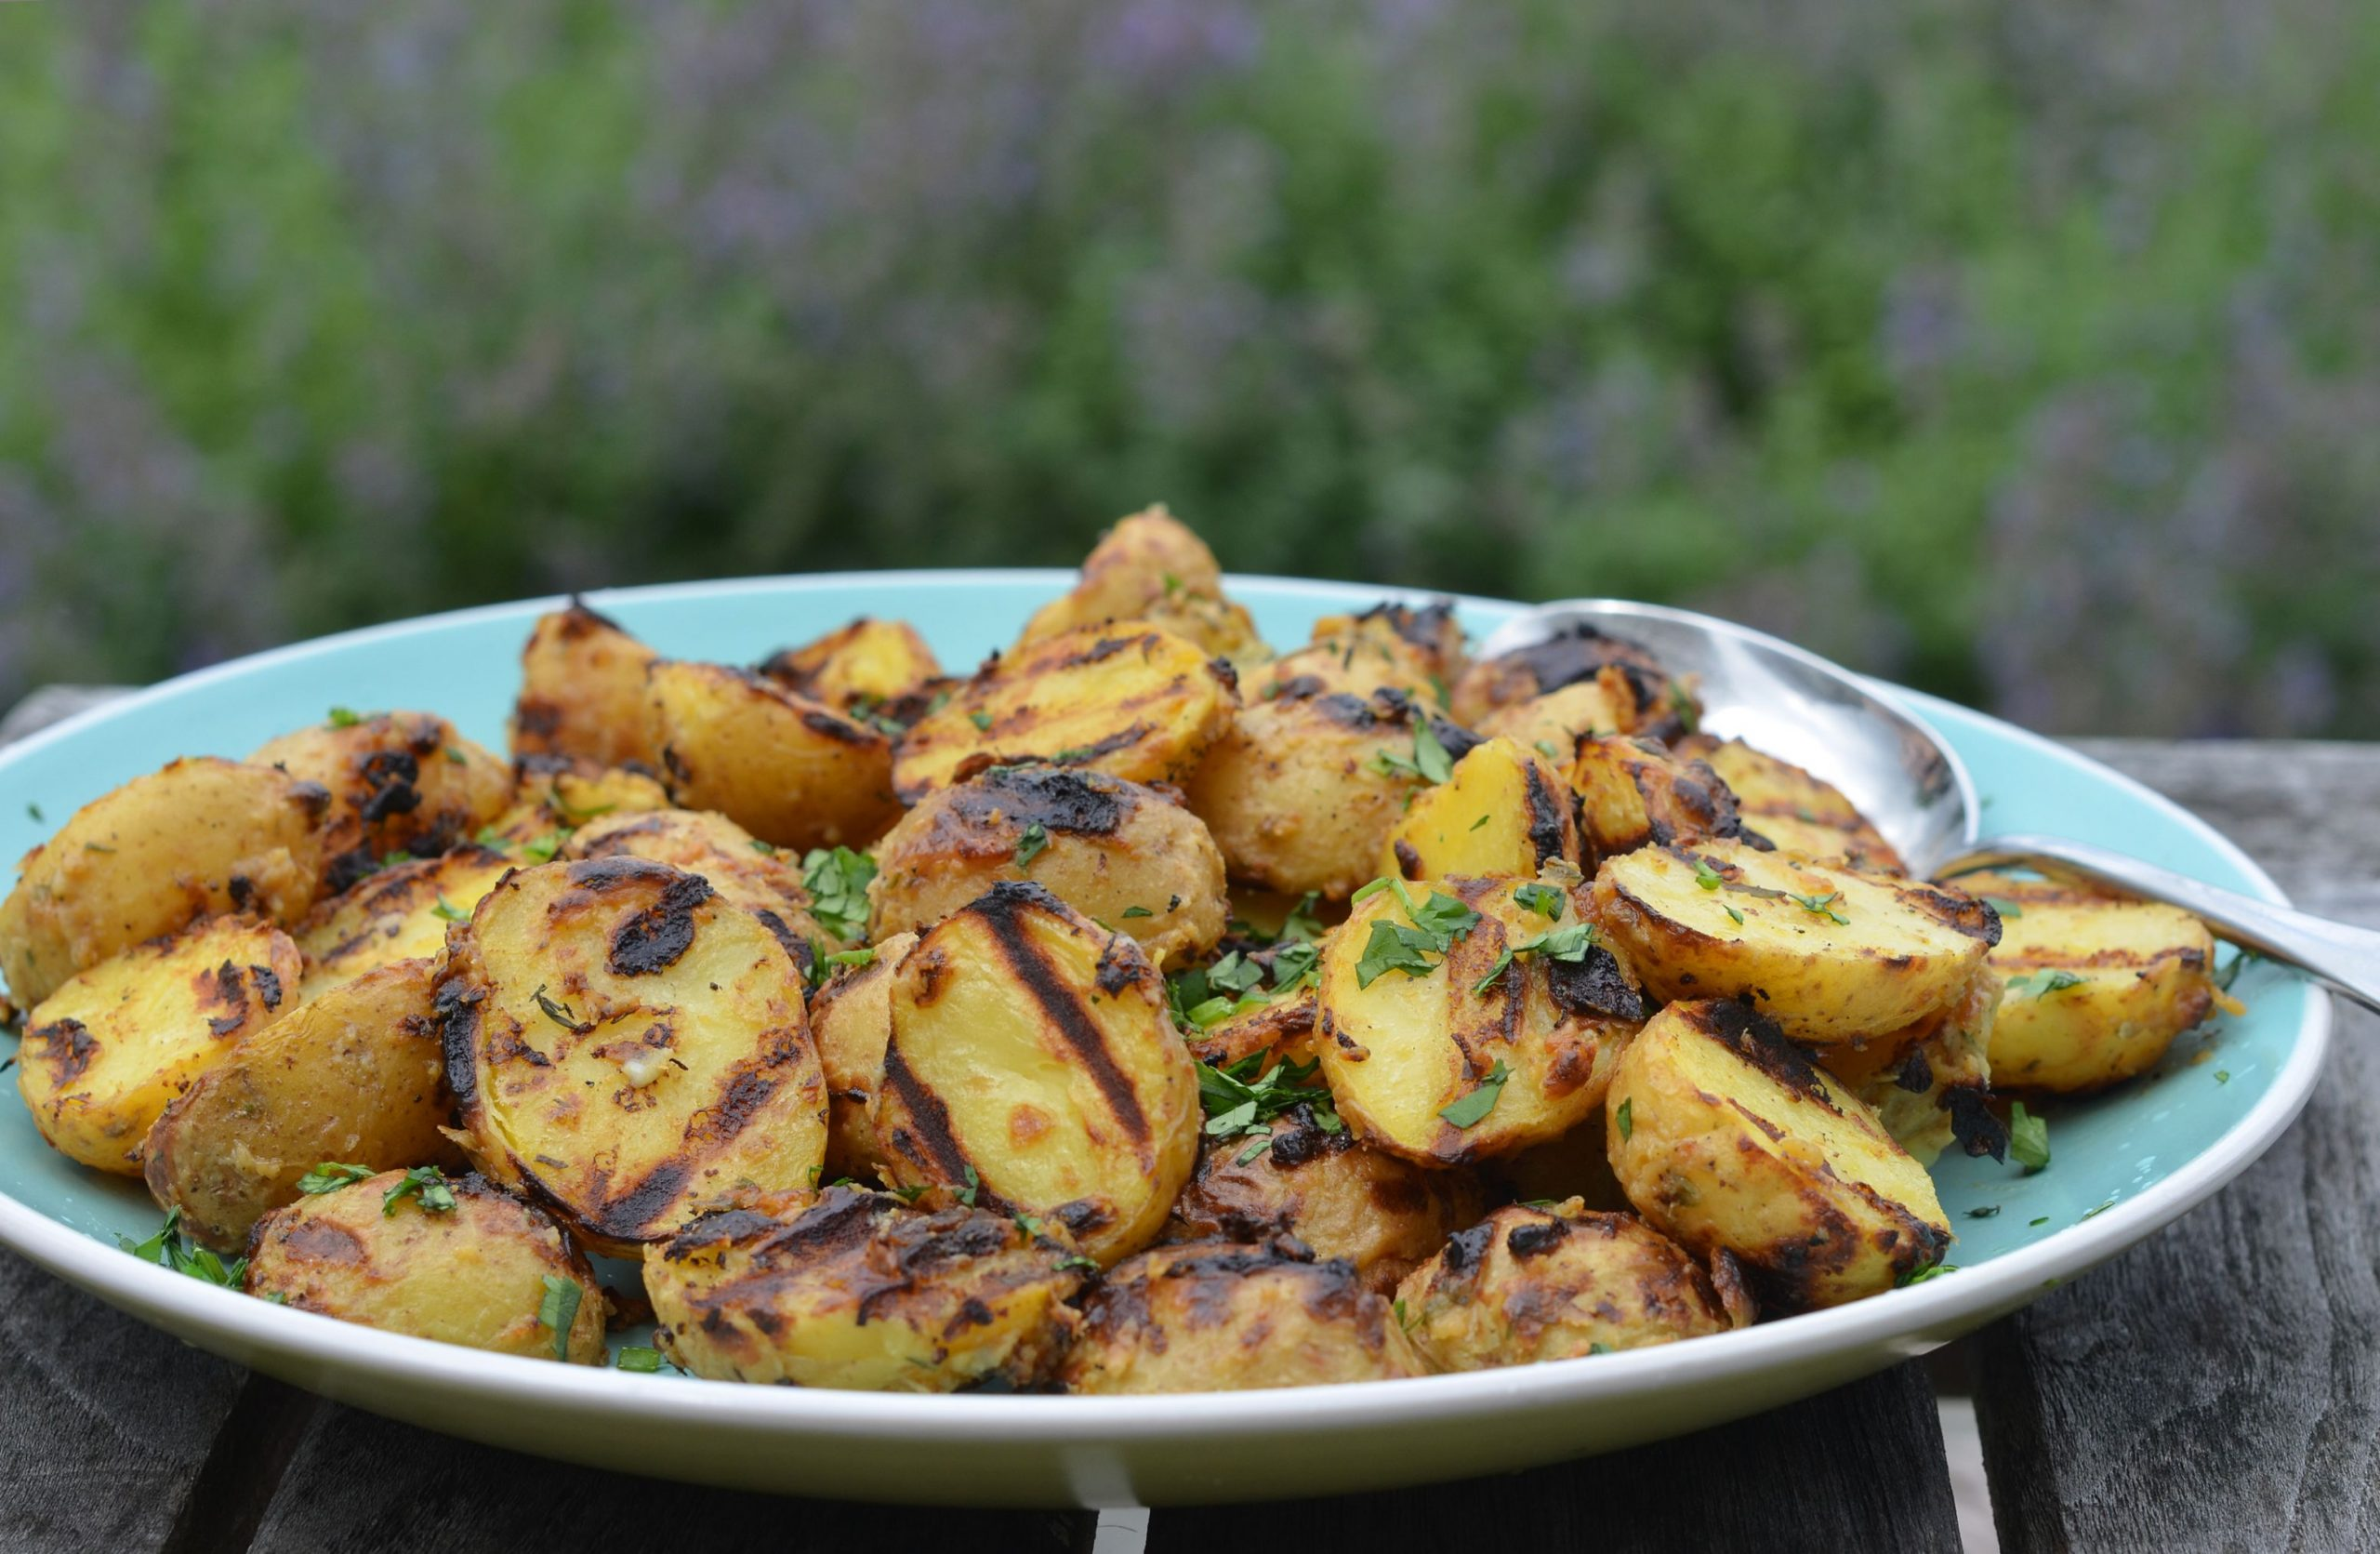 Grilled Baby Potatoes with Dijon Mustard & Thyme - Potato Recipes Grill